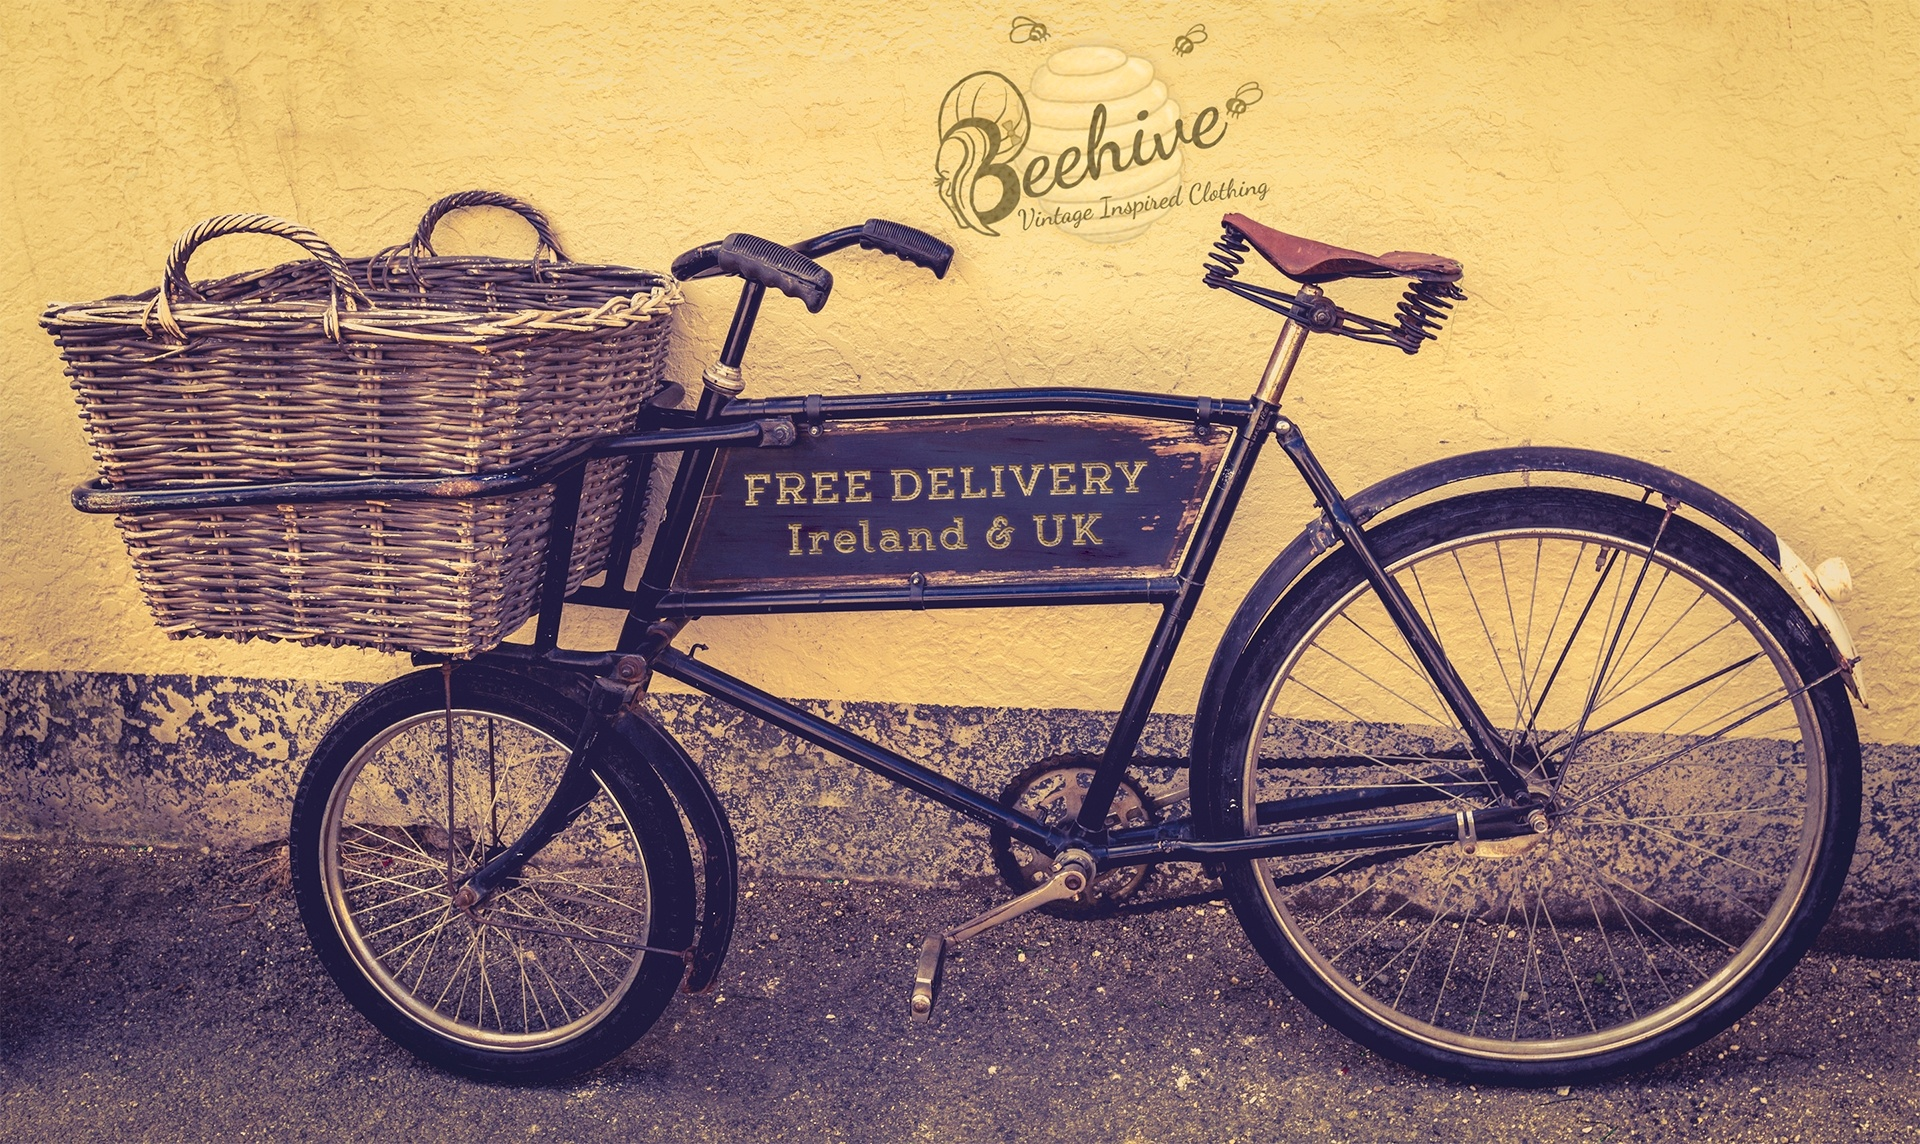 FREE DELIVERY Ireland & UK